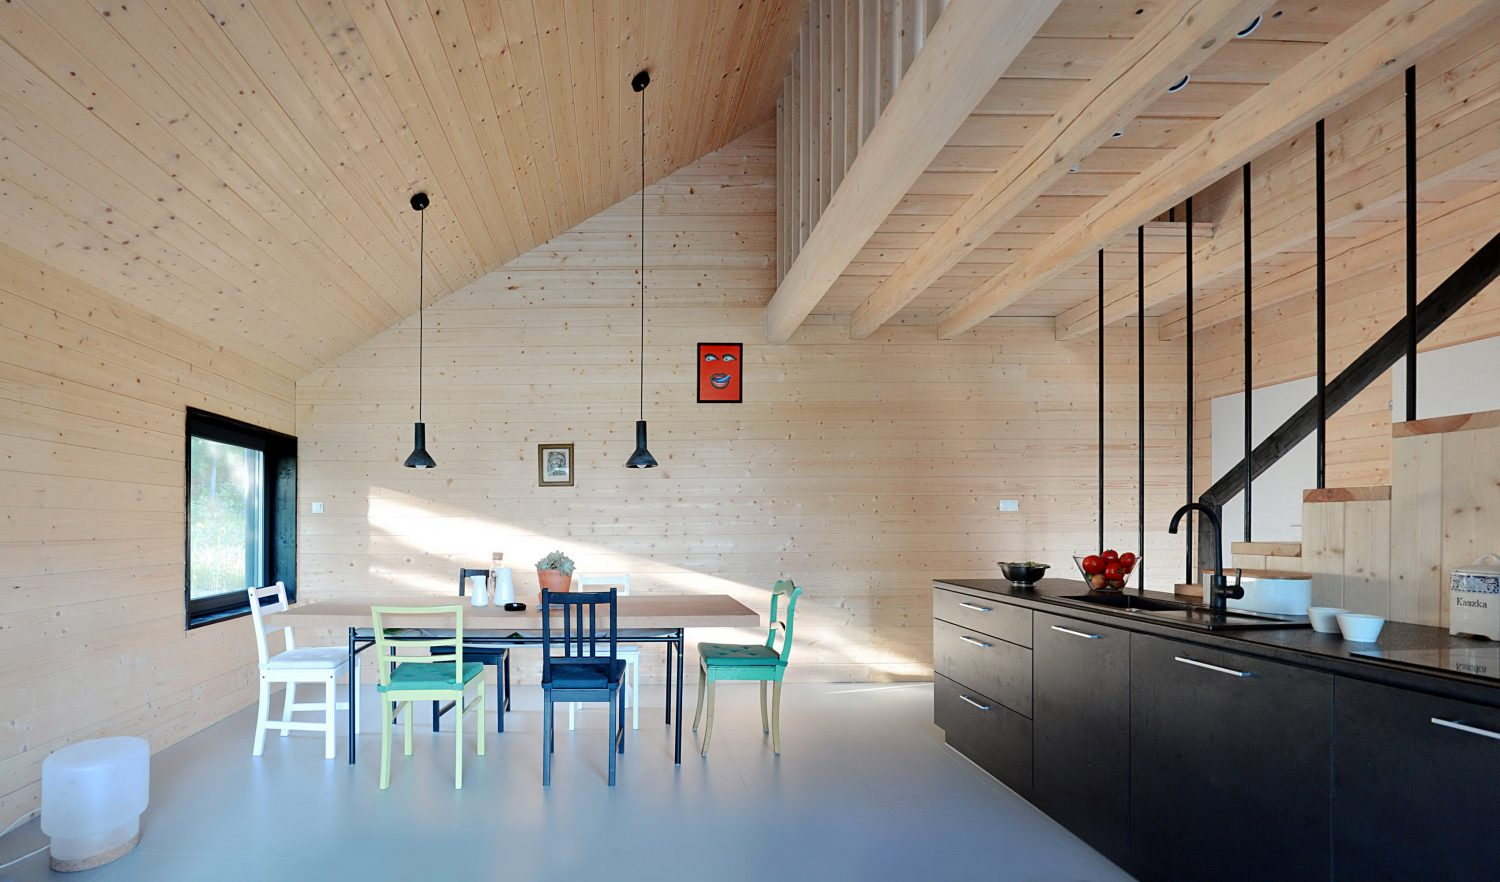 Kashubian House by Grzegorz Layer